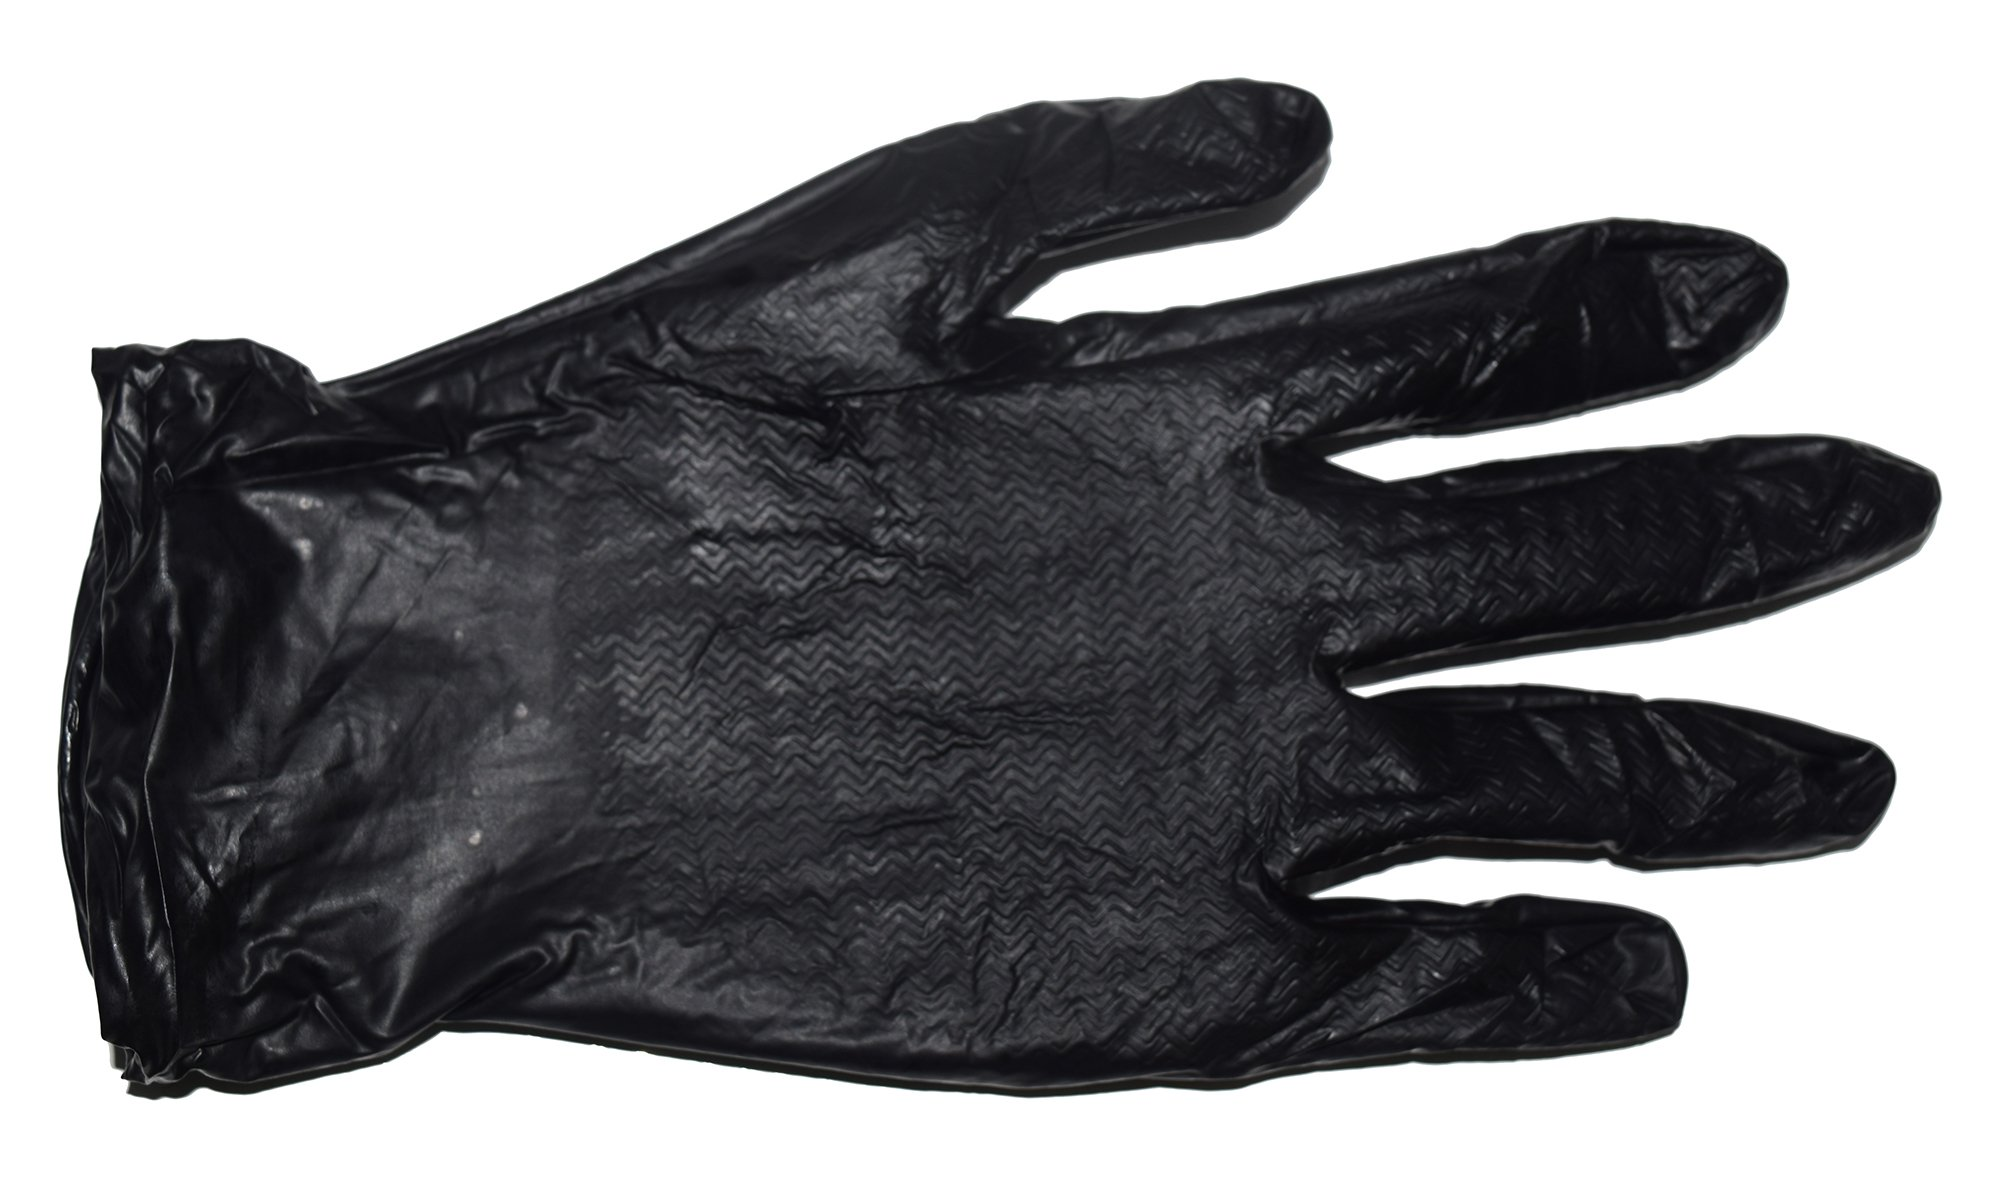 Emerald Z5001 Black MAX-Grip Powder Free Nitrile Glove 6 Mil Disposable with Beaded Cuff 100 Gloves per Box 10 Boxes Total 1000 Gloves Size Extra Large